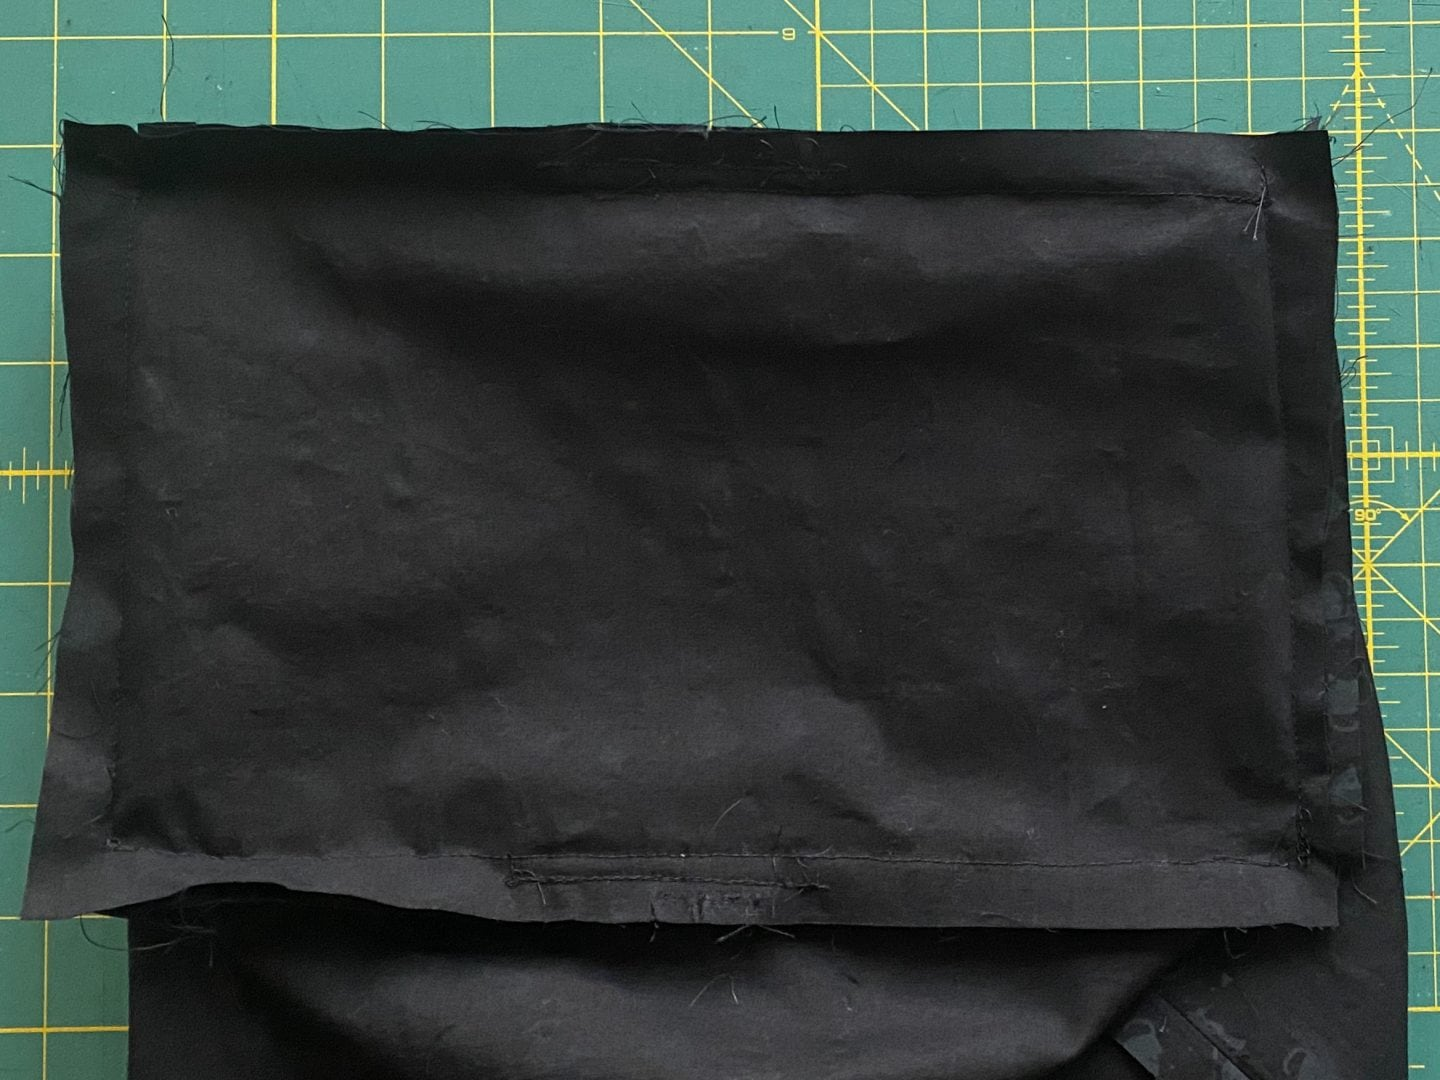 Image of the end piece sewn to the body piece